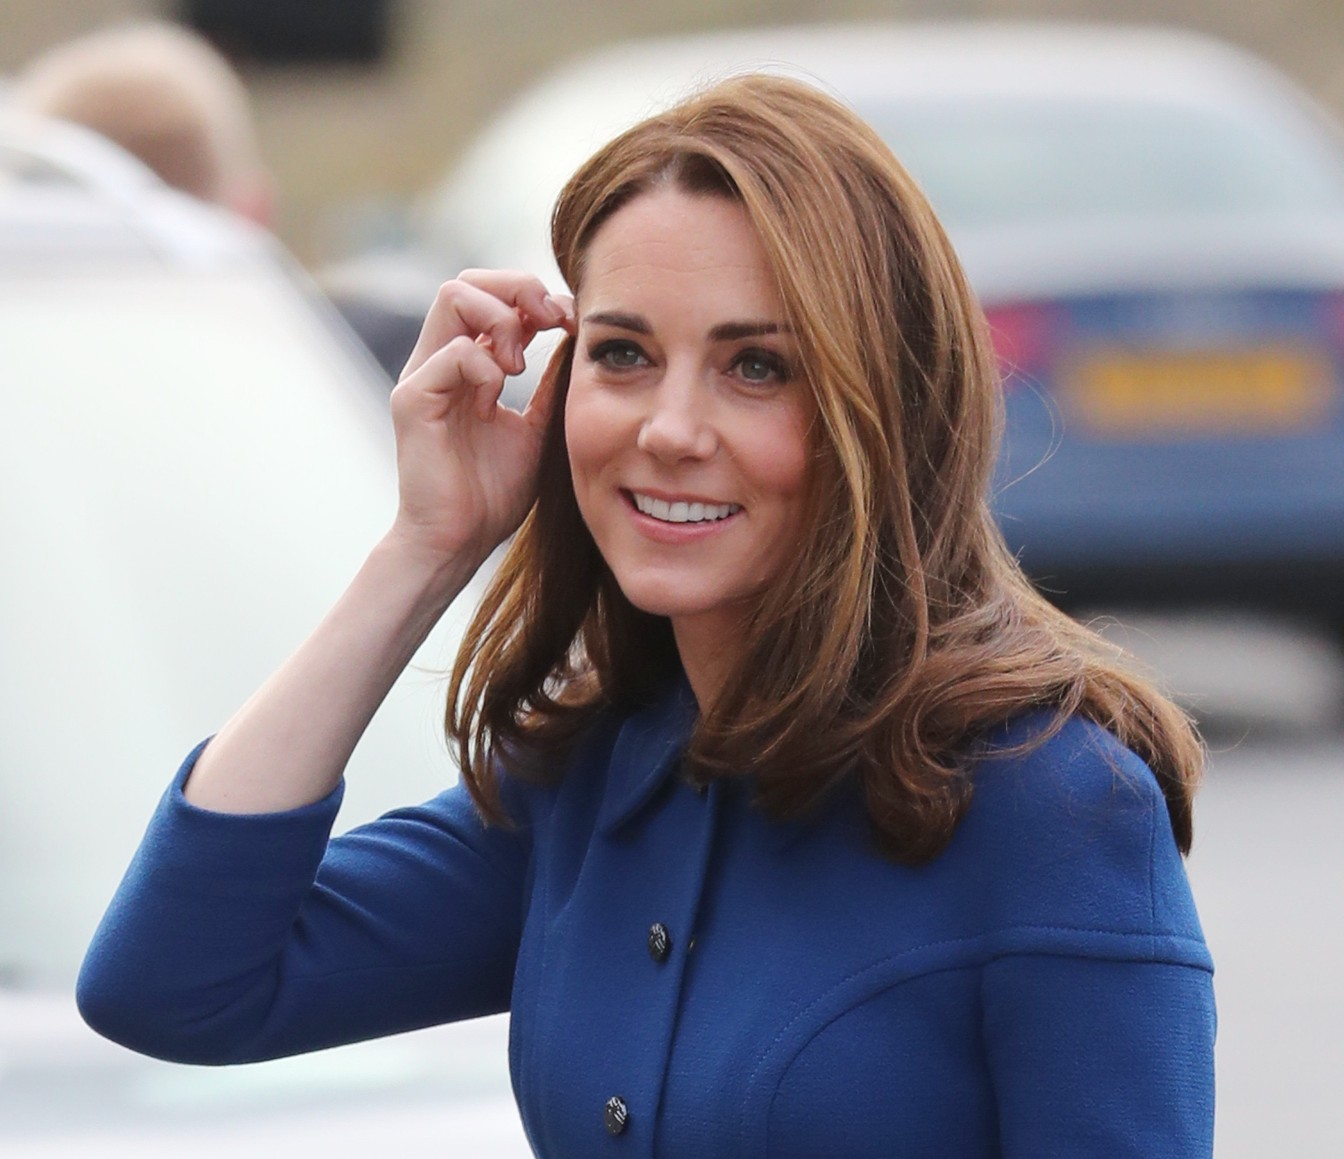 Kate Middleton, duquesa de Cambridge, completa 37 anos